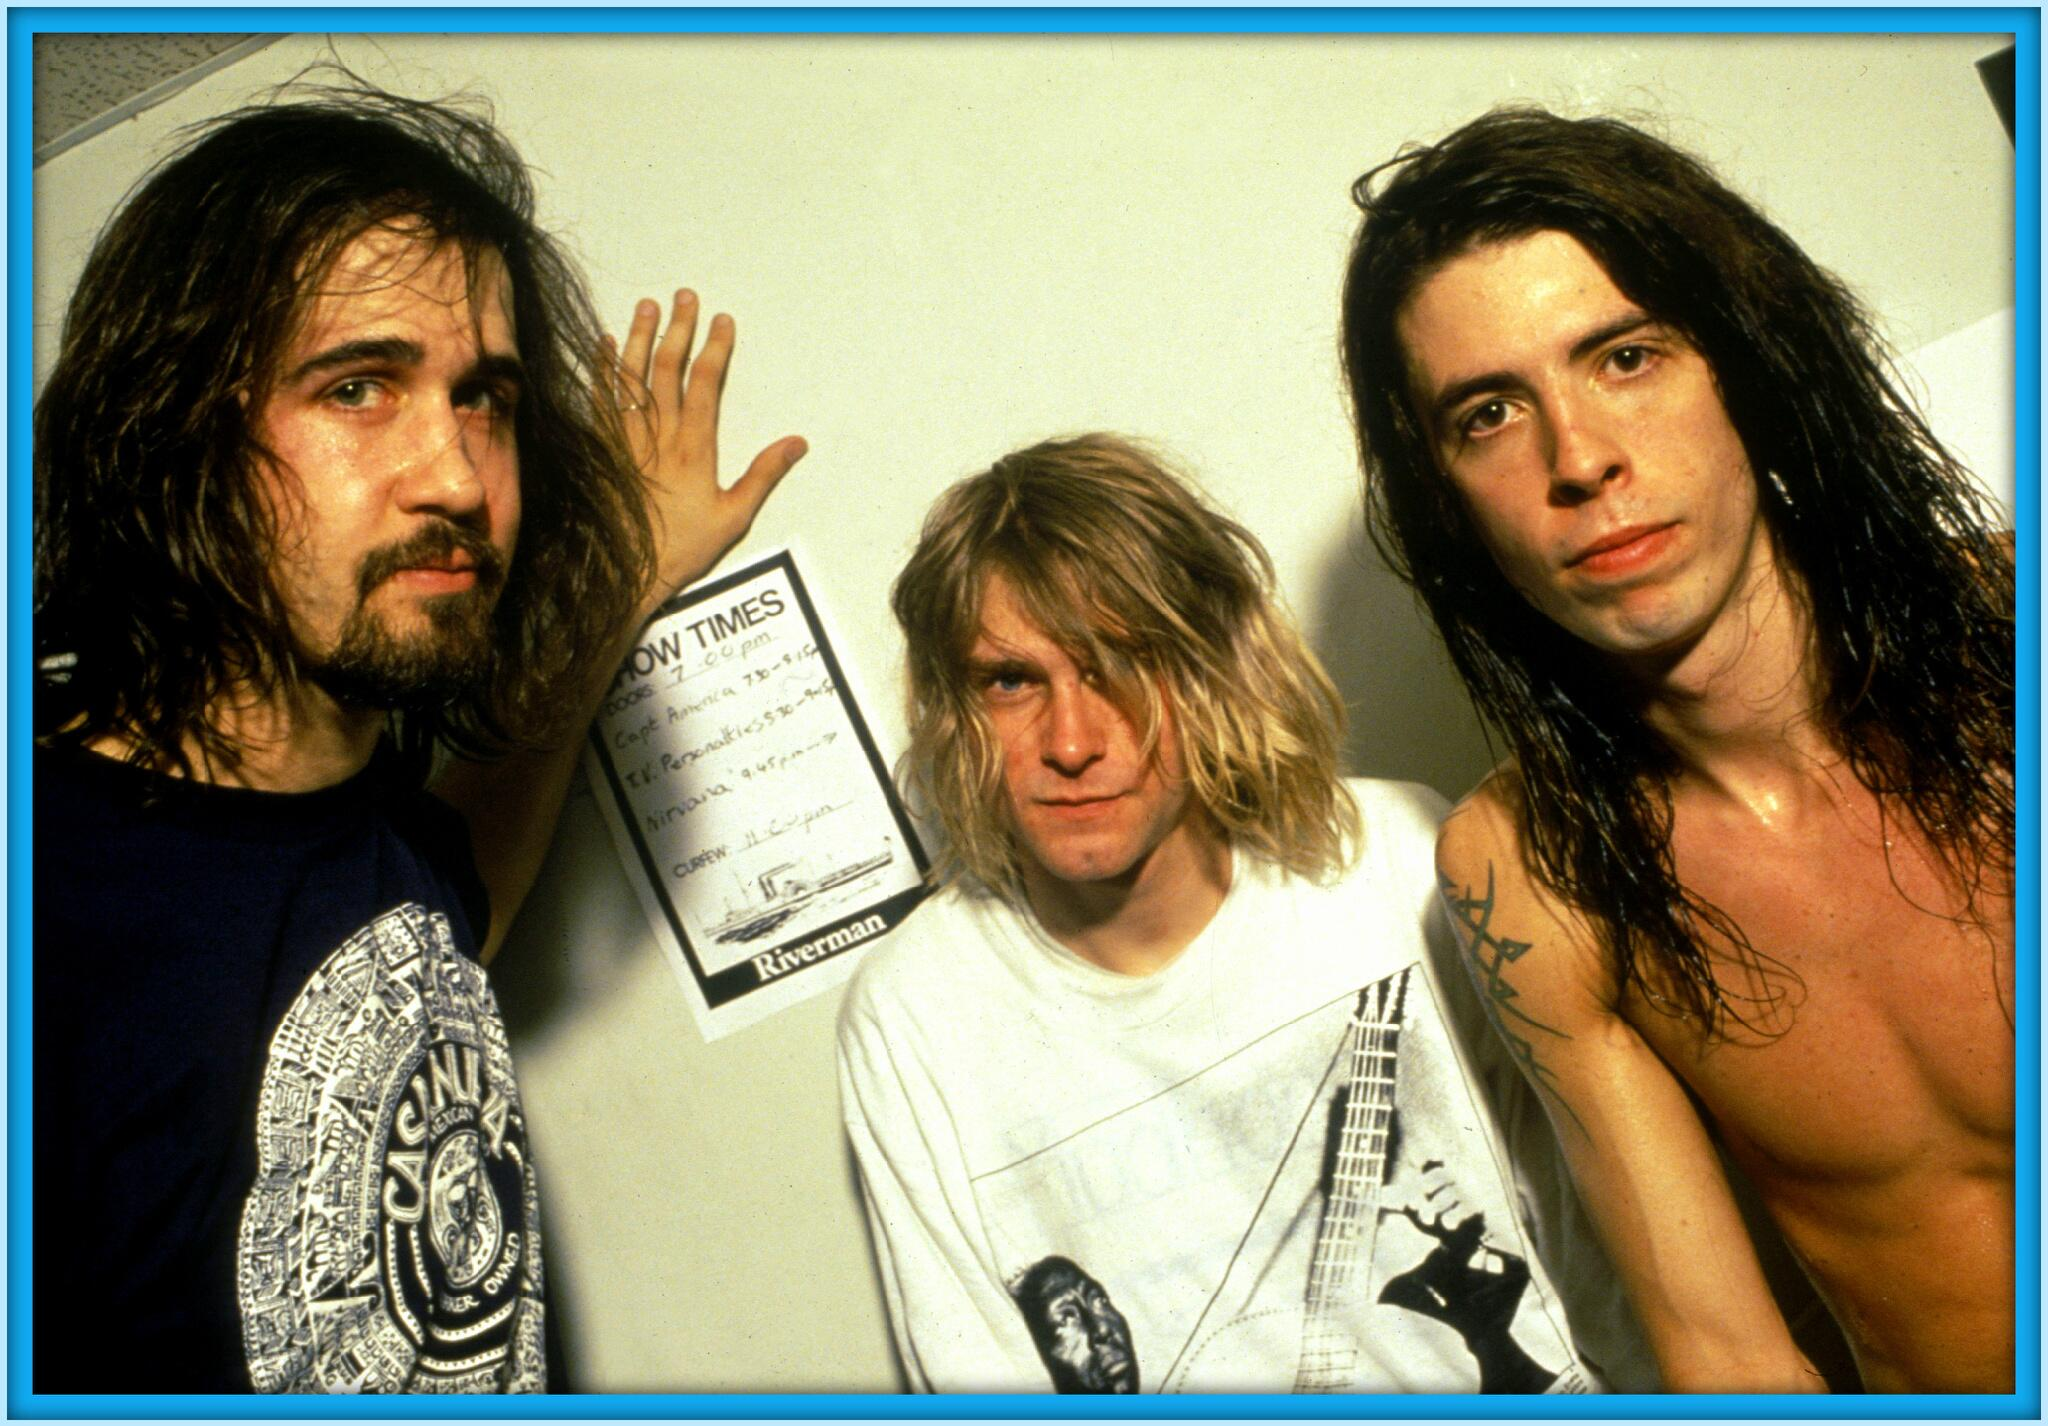 September 24, 1991 – Nirvana released 'Nevermind' and changed everything! #Nevermind22 #Grunge http://t.co/G9UauIVGBw